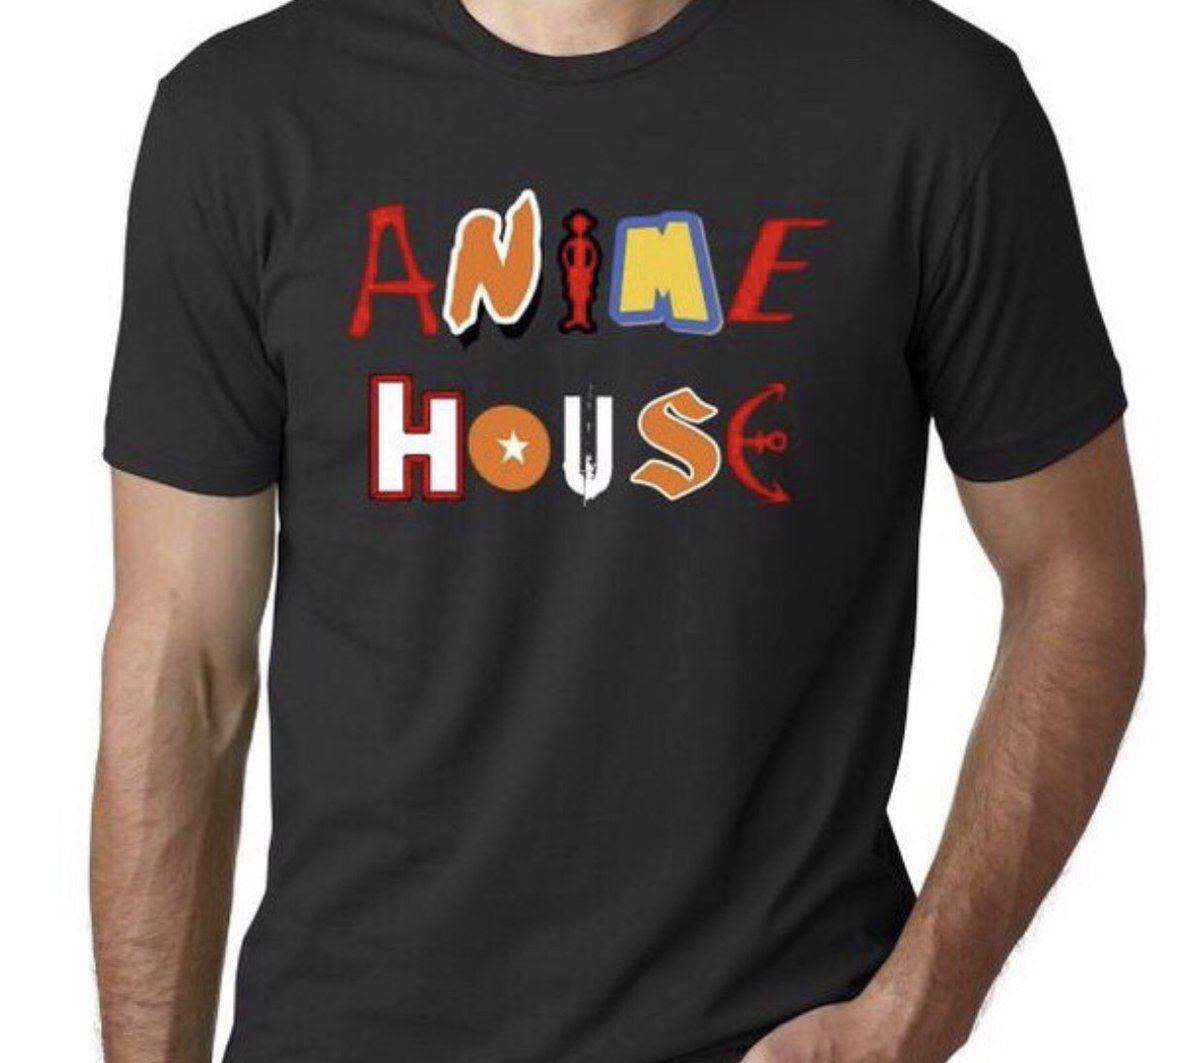 Ay get you an Anime House Shirt ! From RDCworld as well! 🙏🏾🔥